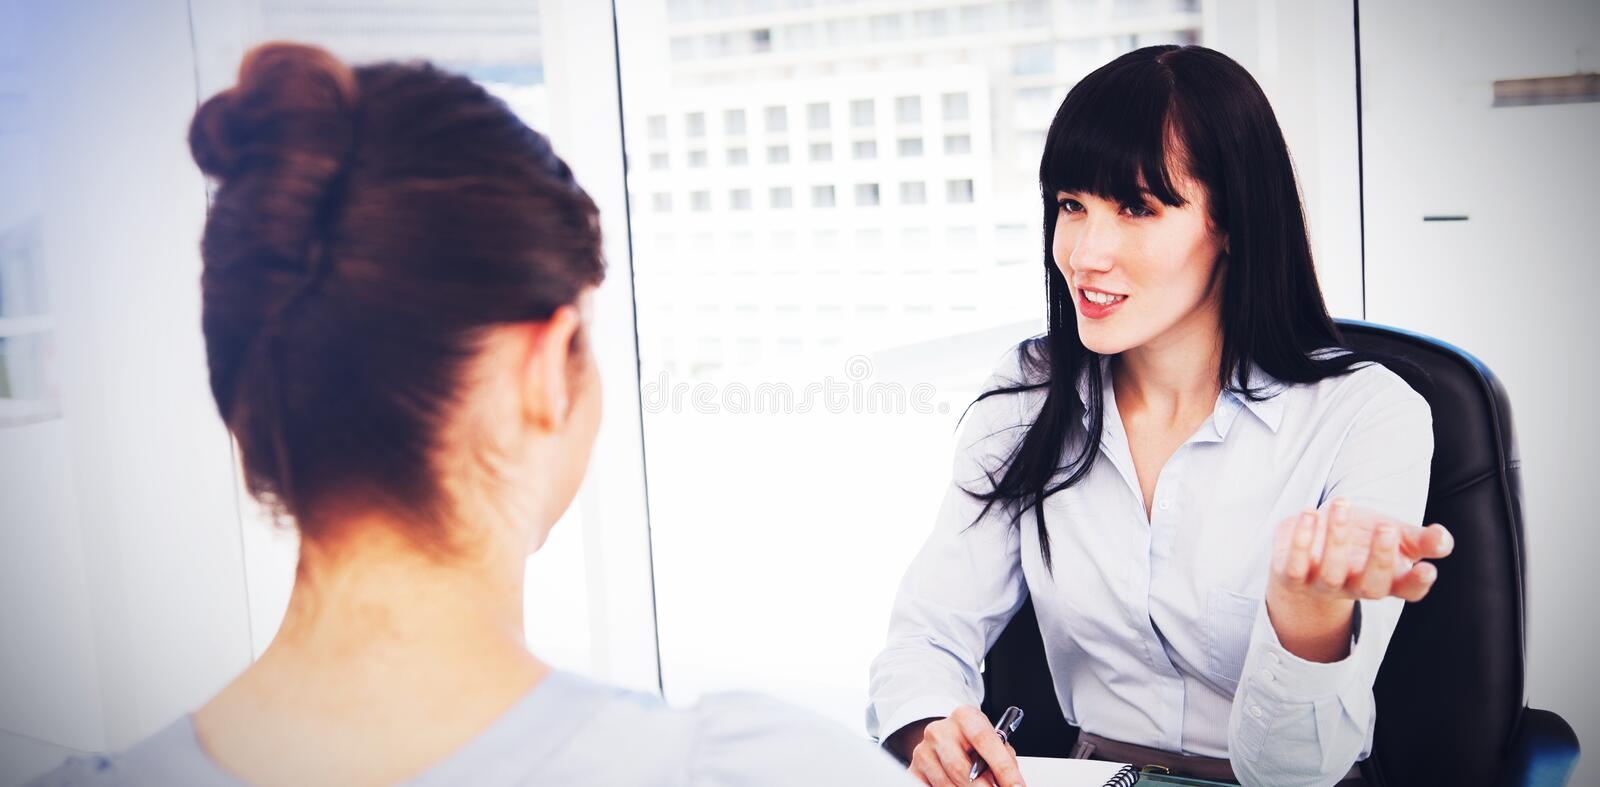 Business woman interviews a potential new employee stock photography